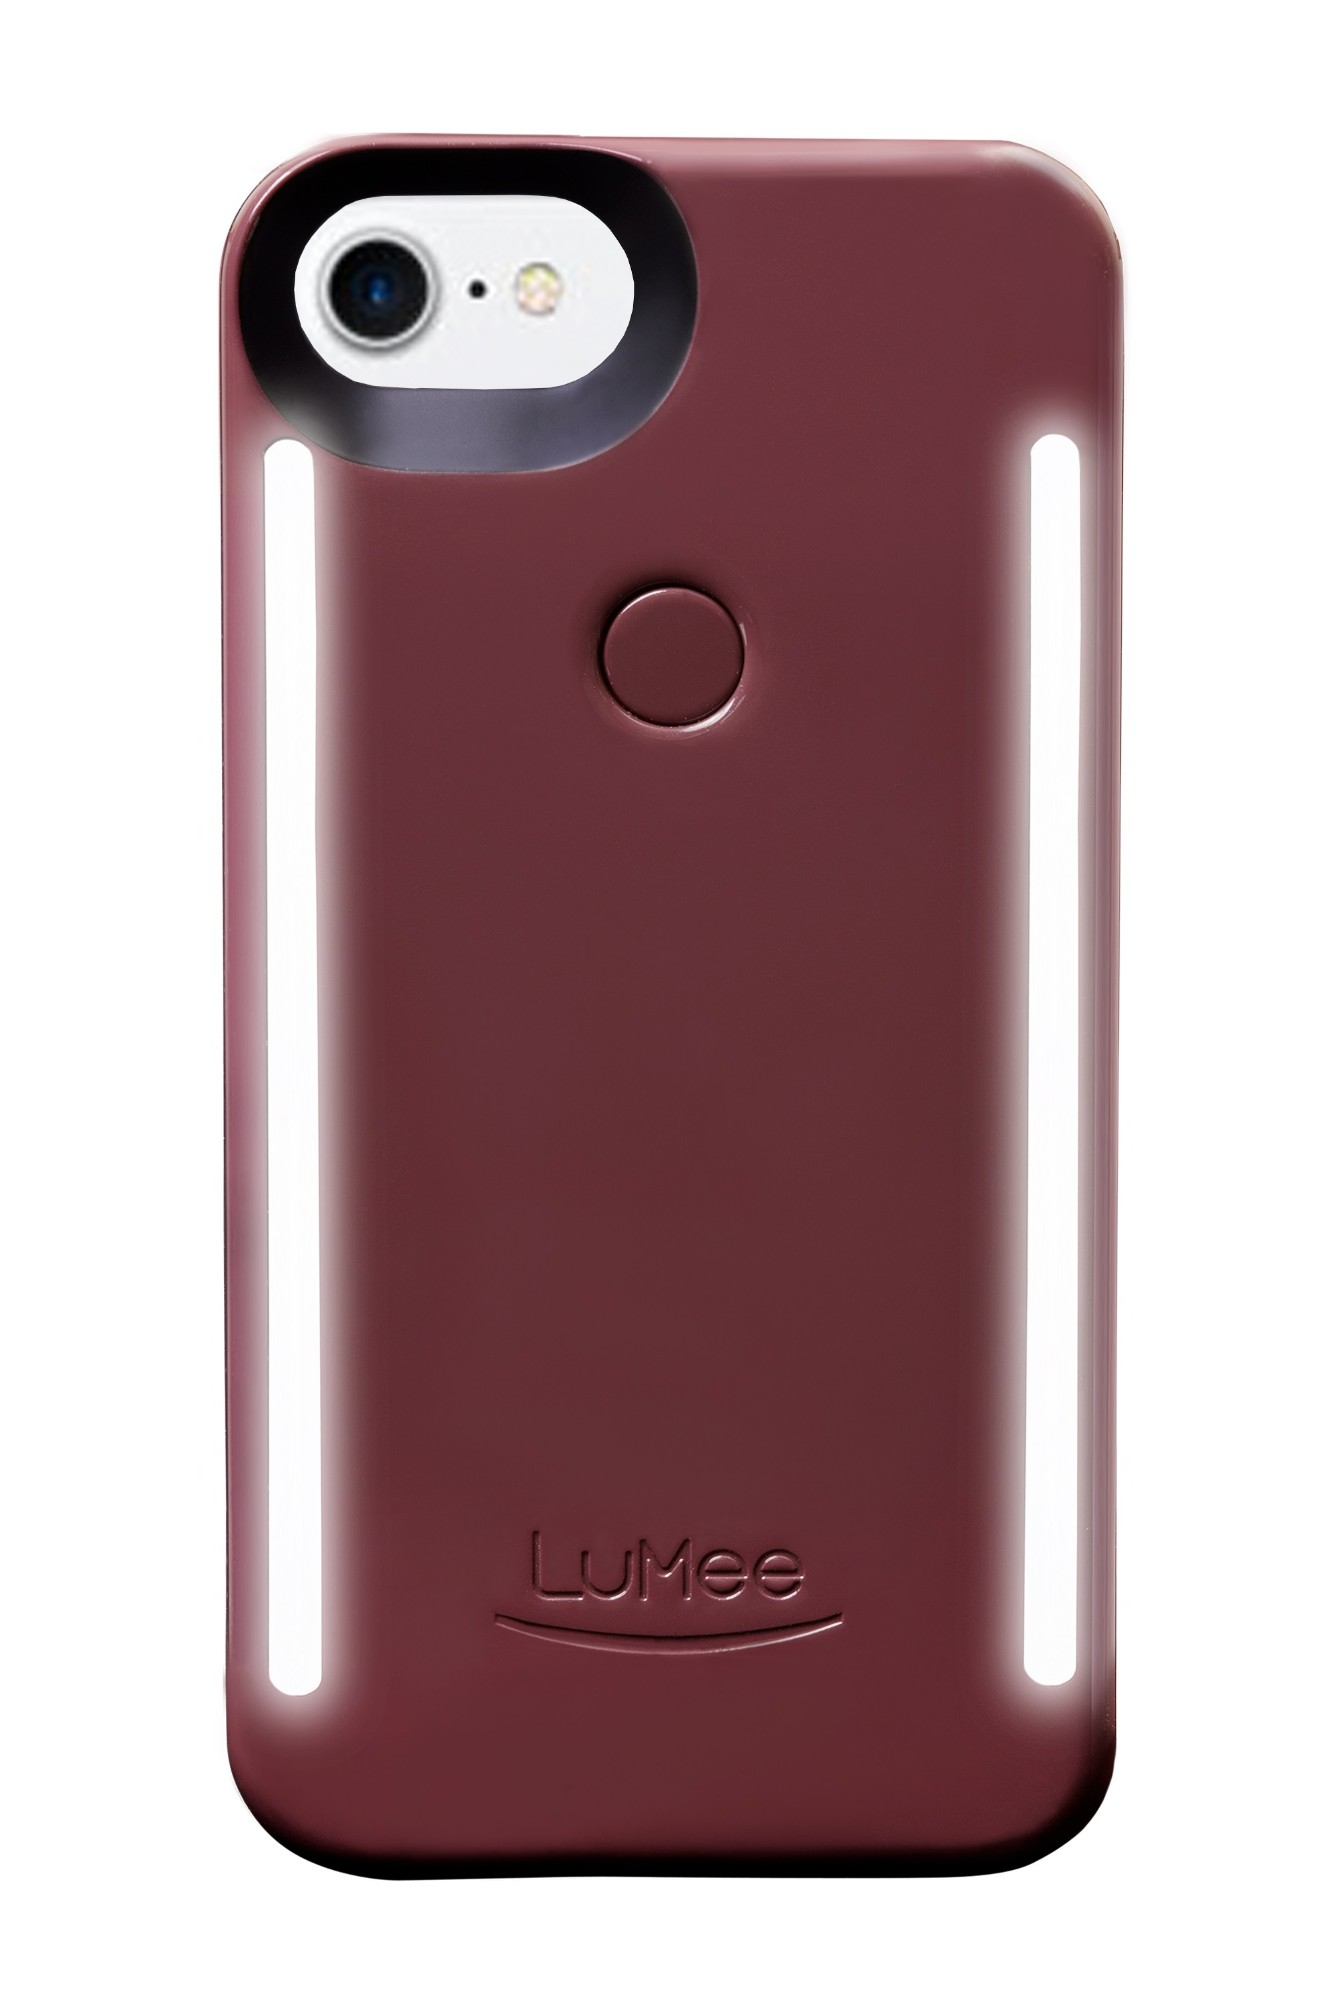 Lumee Duo iPhone 6/6s 7/8 Plum Noir